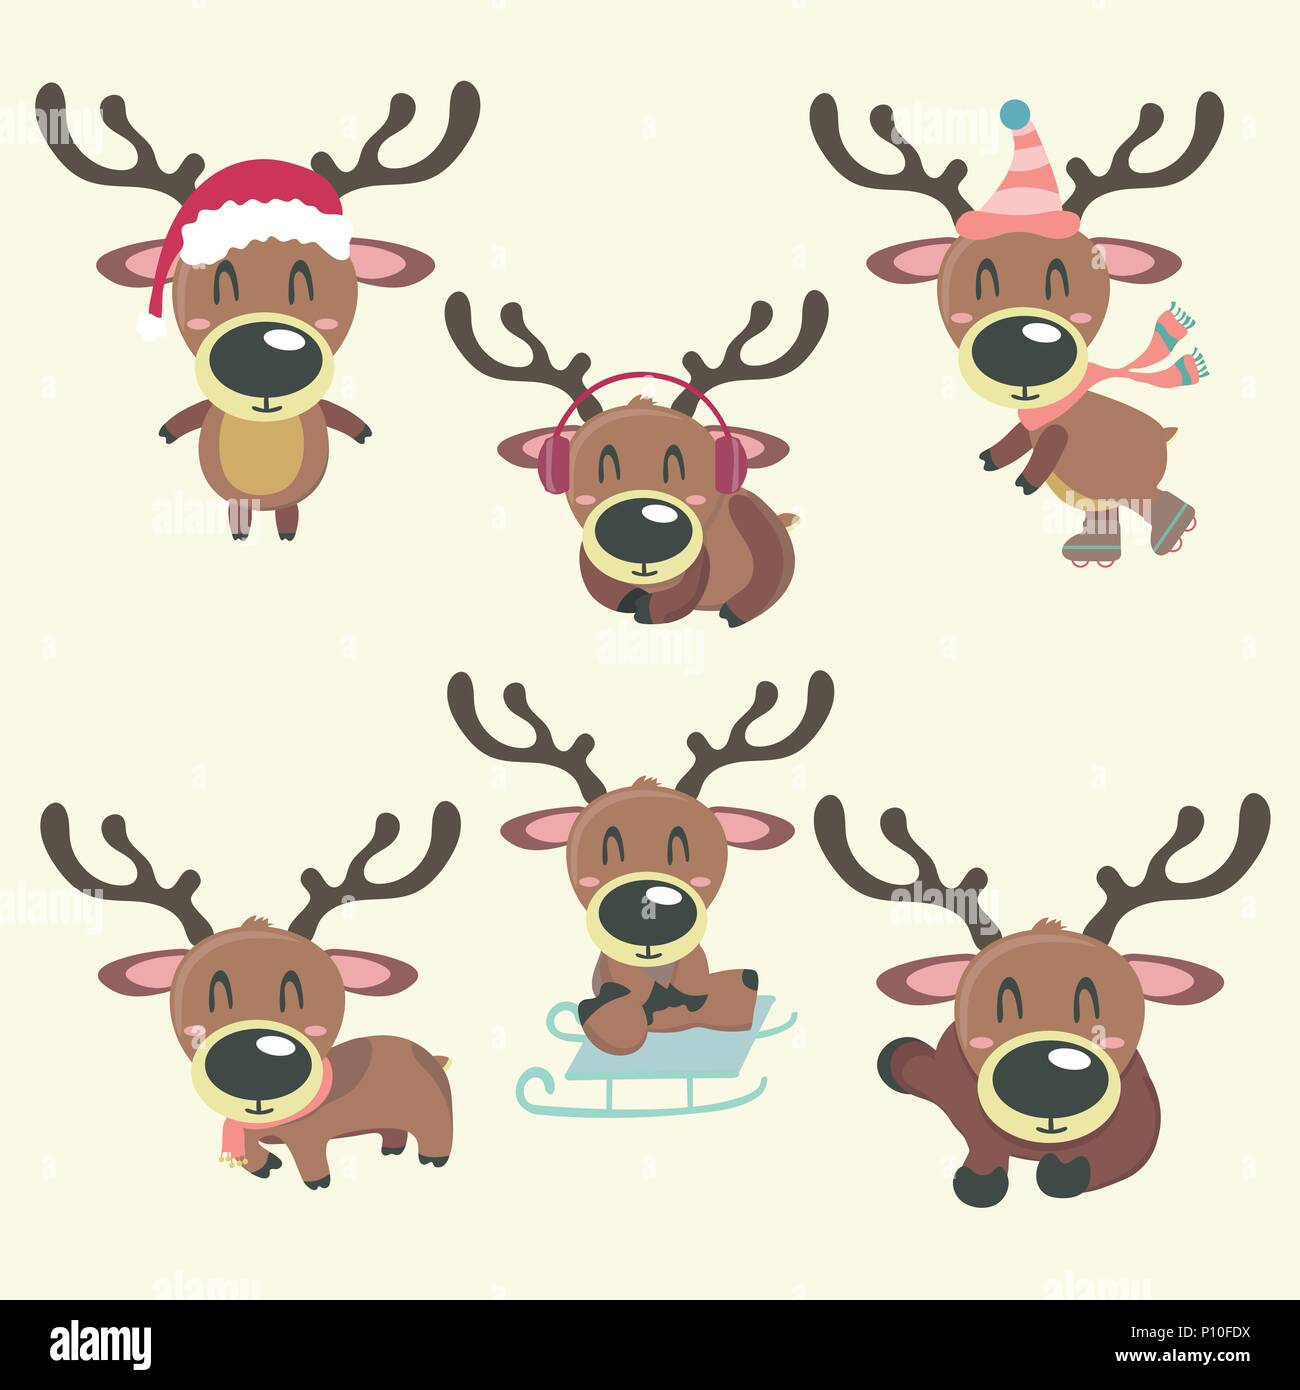 A set of vector colorful christmas rain deer illustrations. Cartoony pictures. - Stock Image